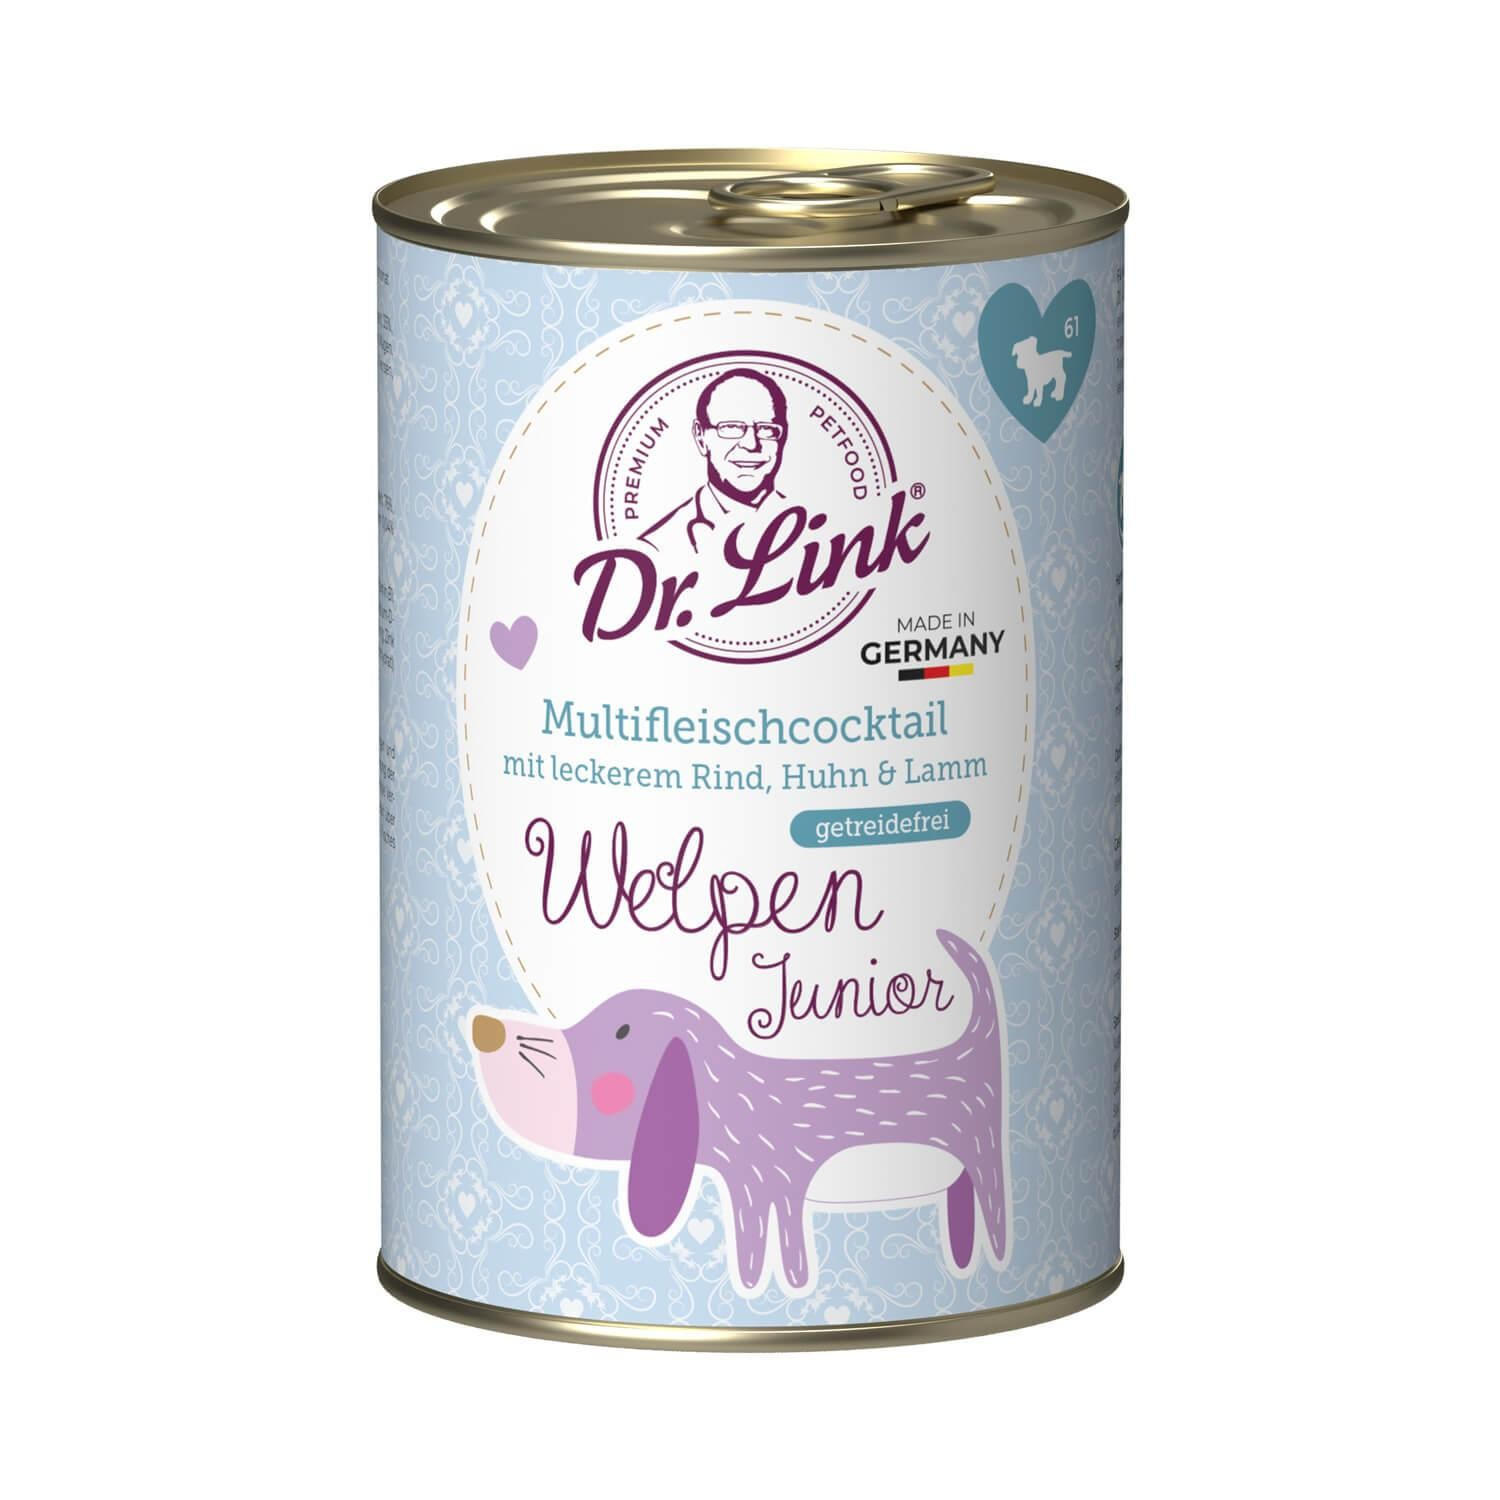 Dr. Link® WELPEN JUNIOR 1x400g Multifleischcocktail | Probedose